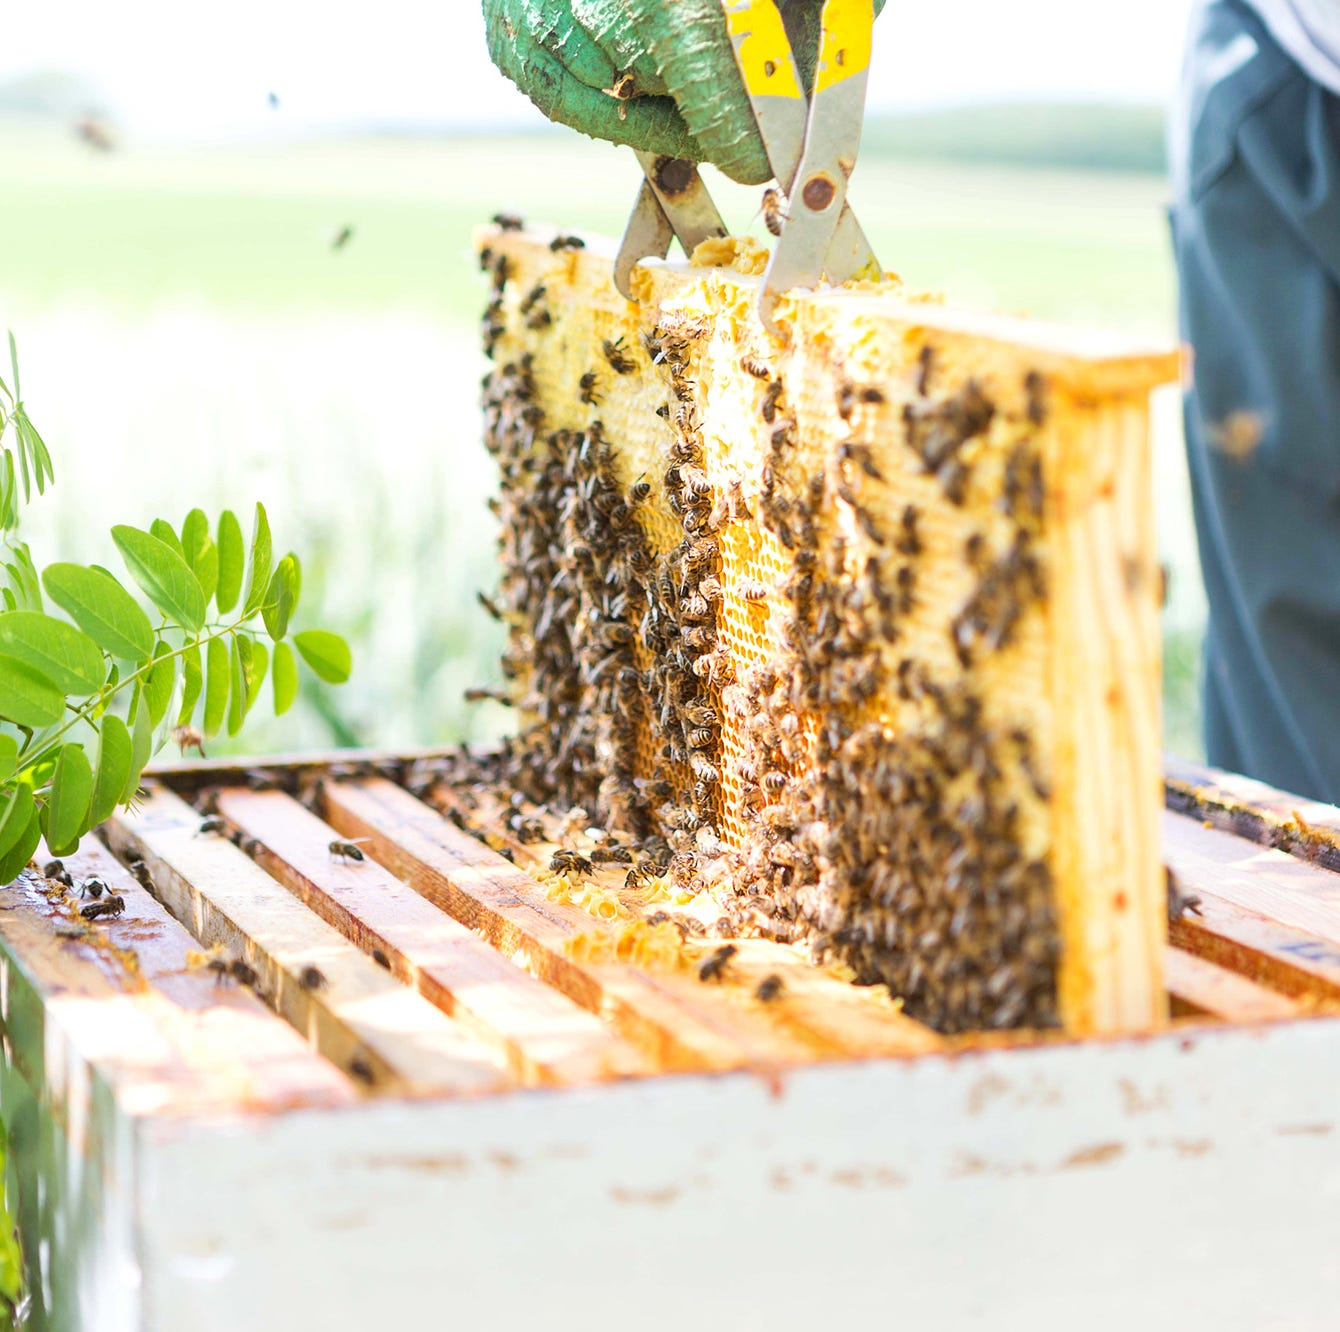 Home Advisor: 5 tips for aspiring beekeepers